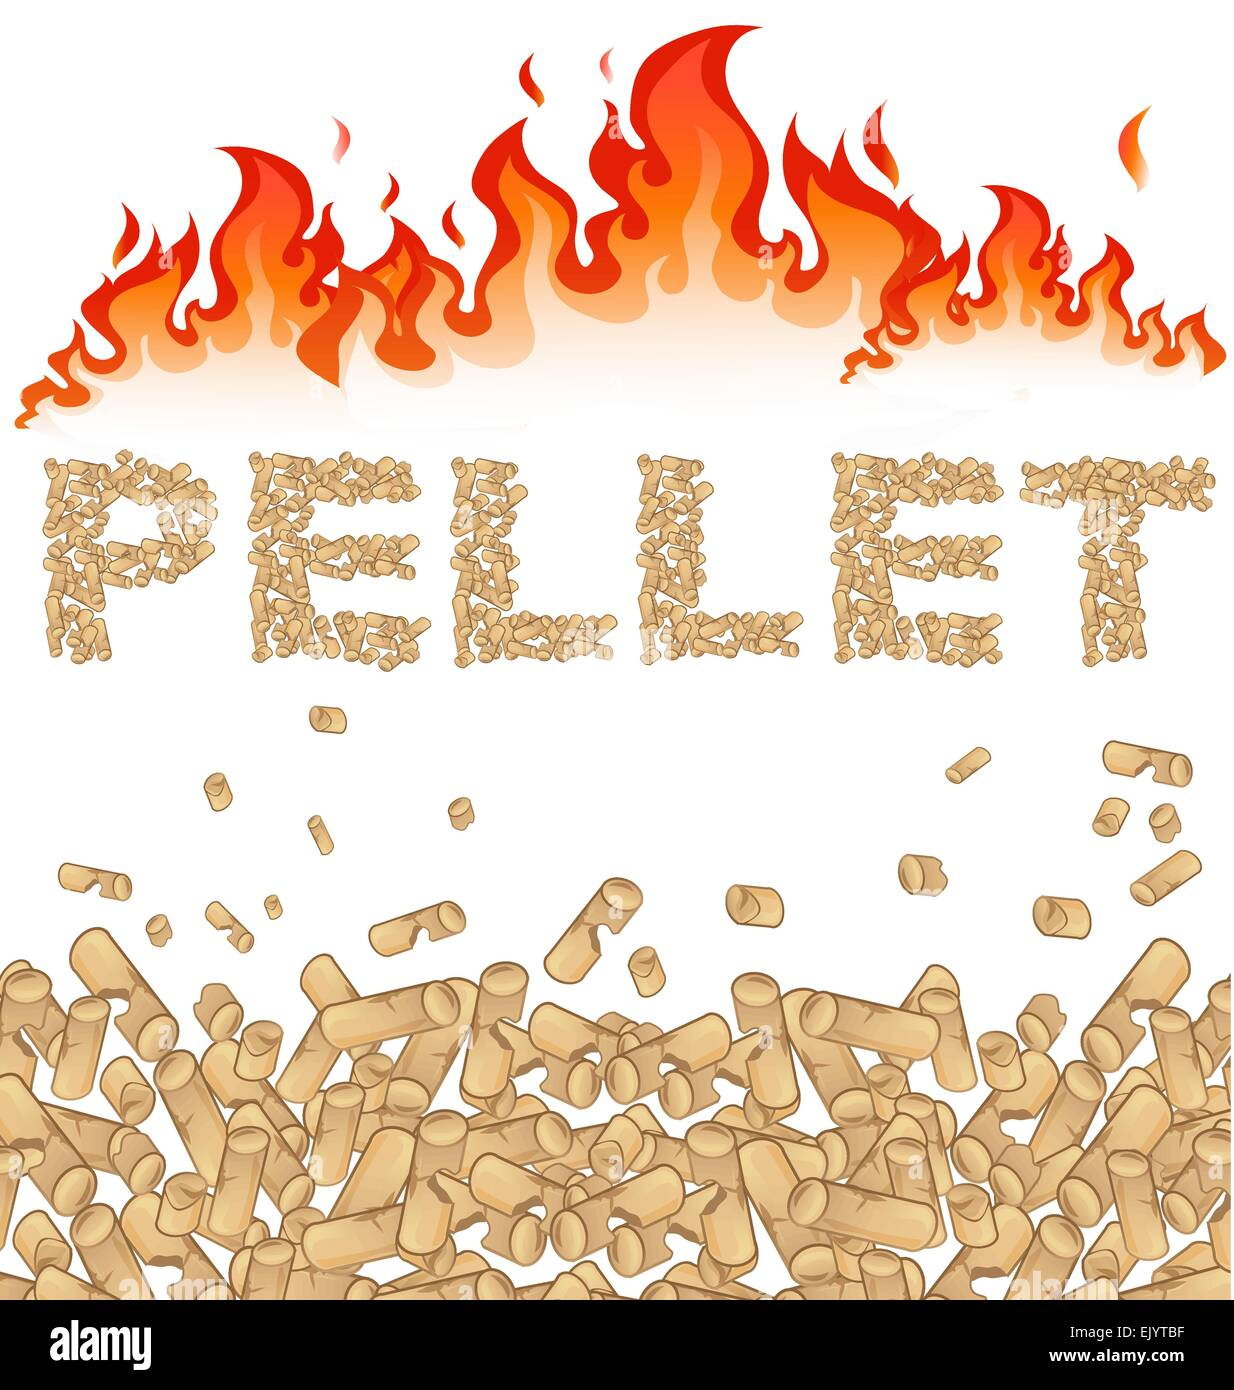 pellet background with fire on white - Stock Vector